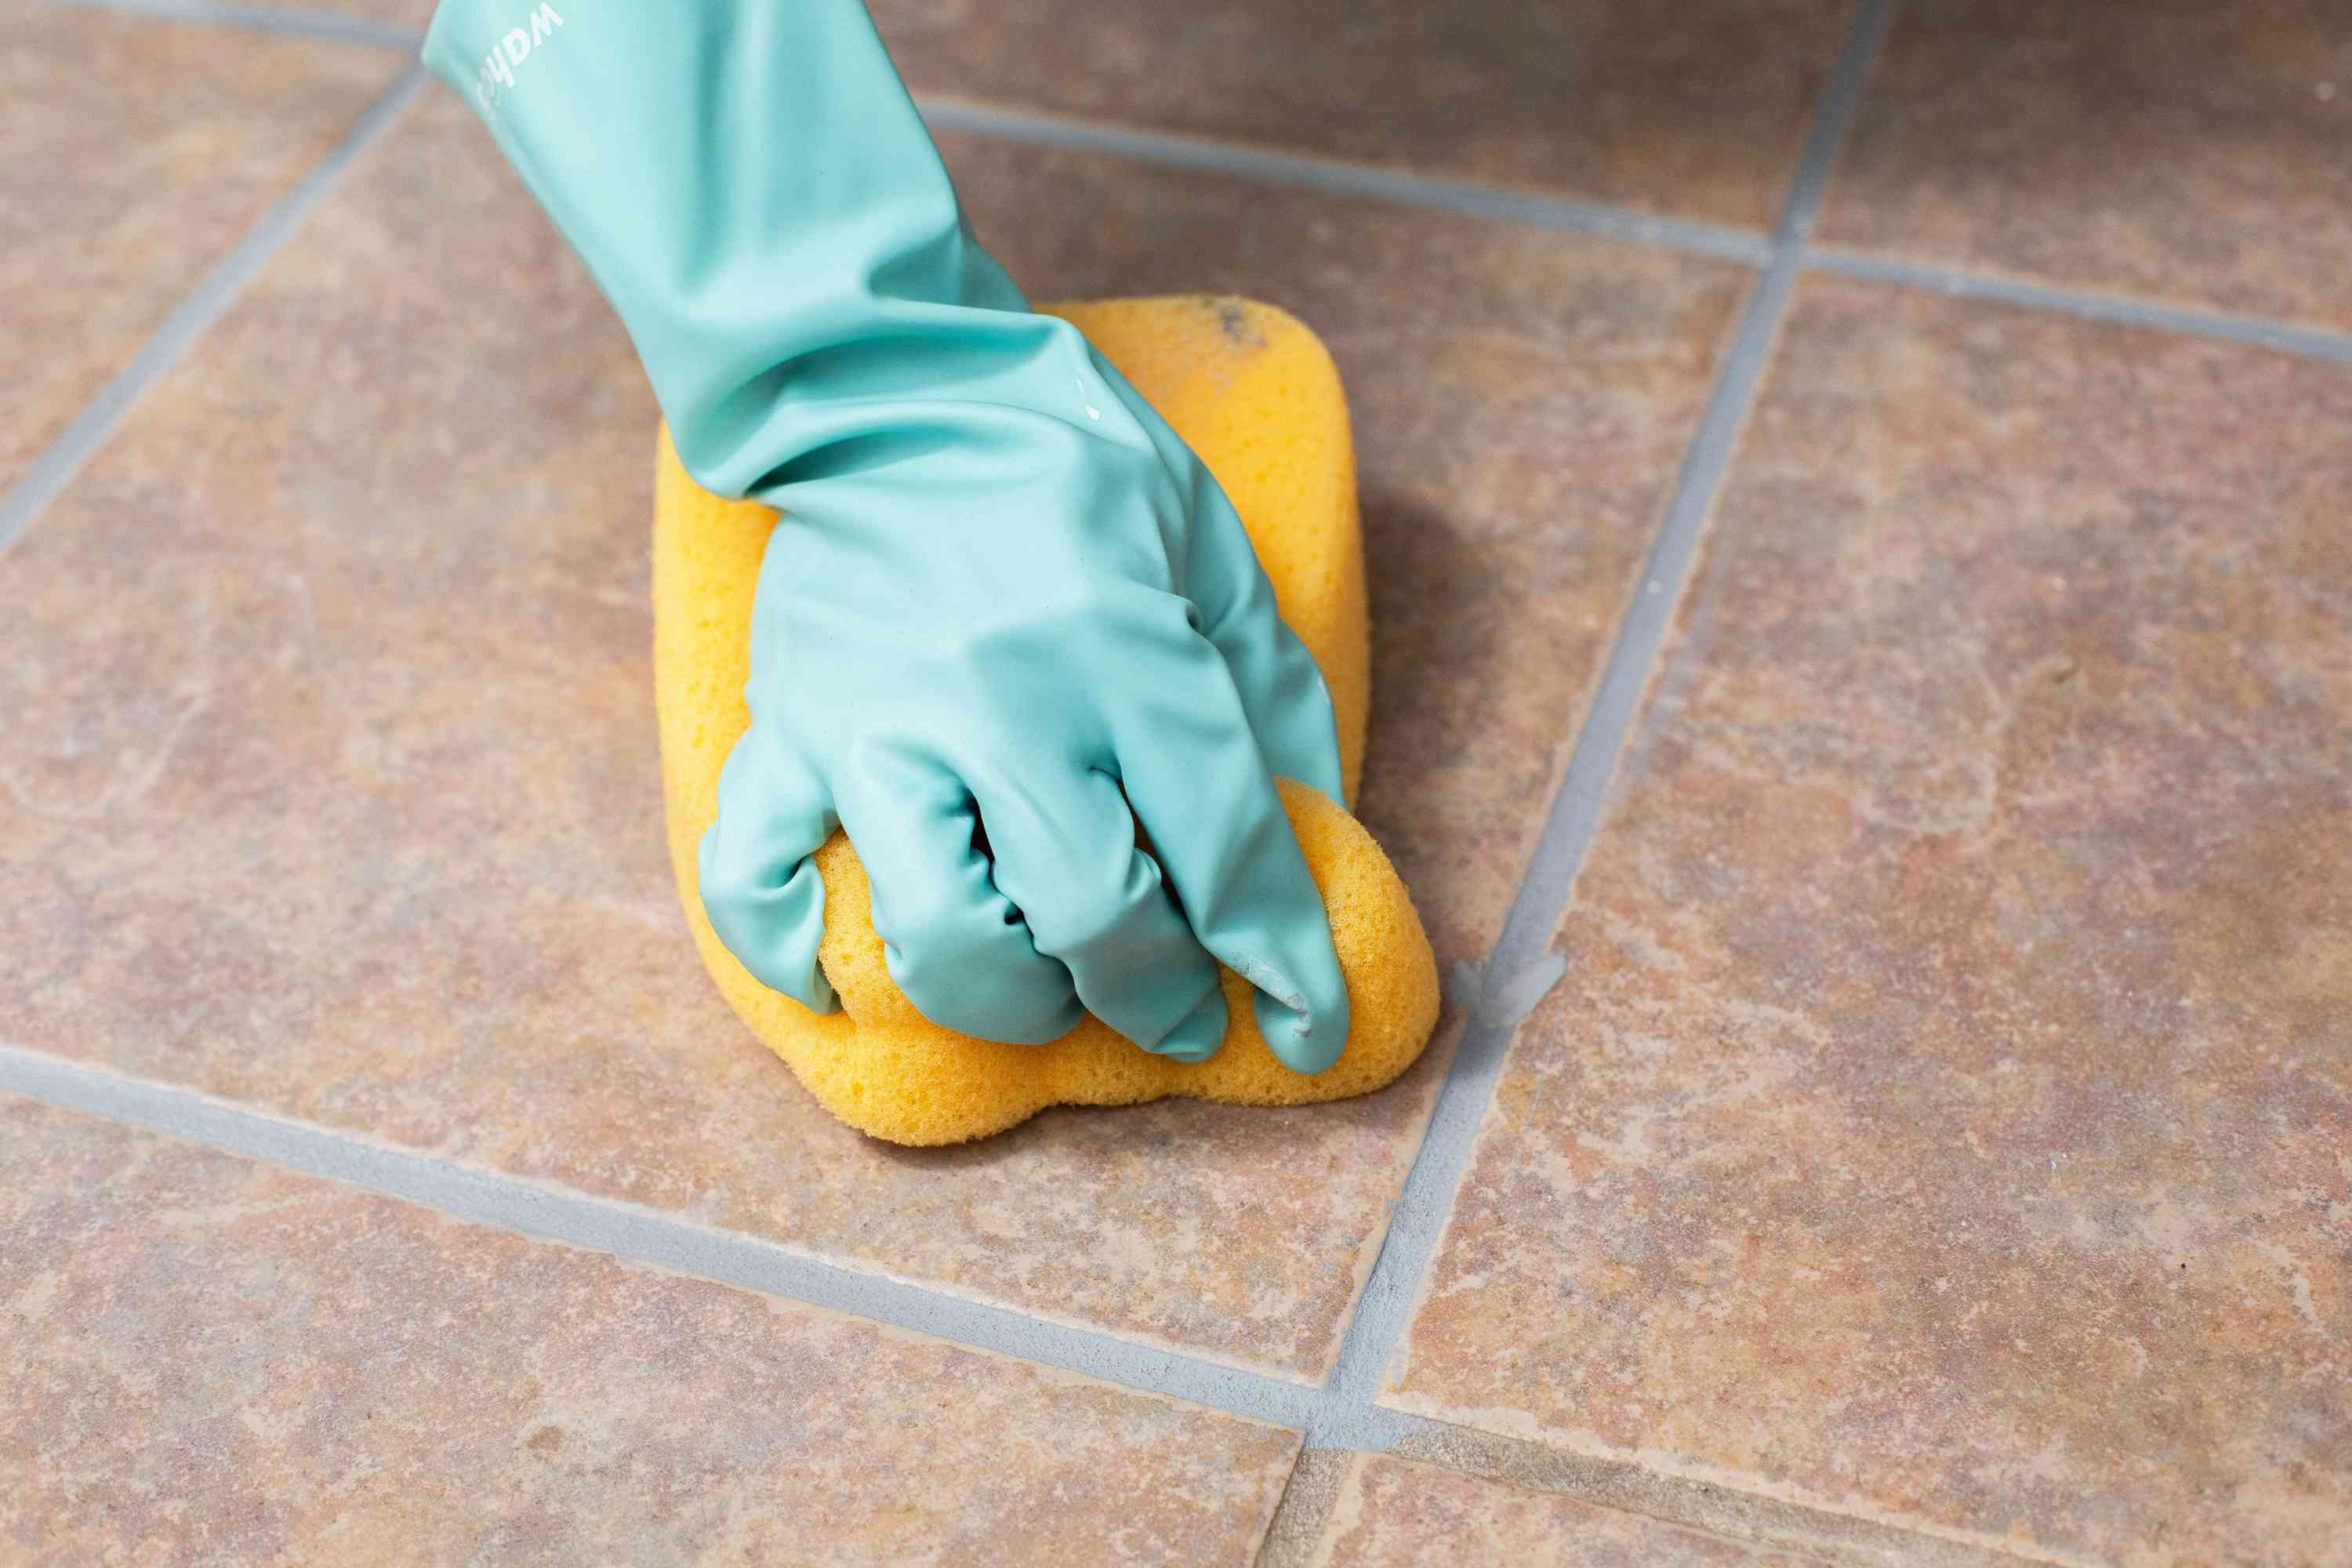 Excess colorant cleaned with yellow nylon-faced sponge on tile floor